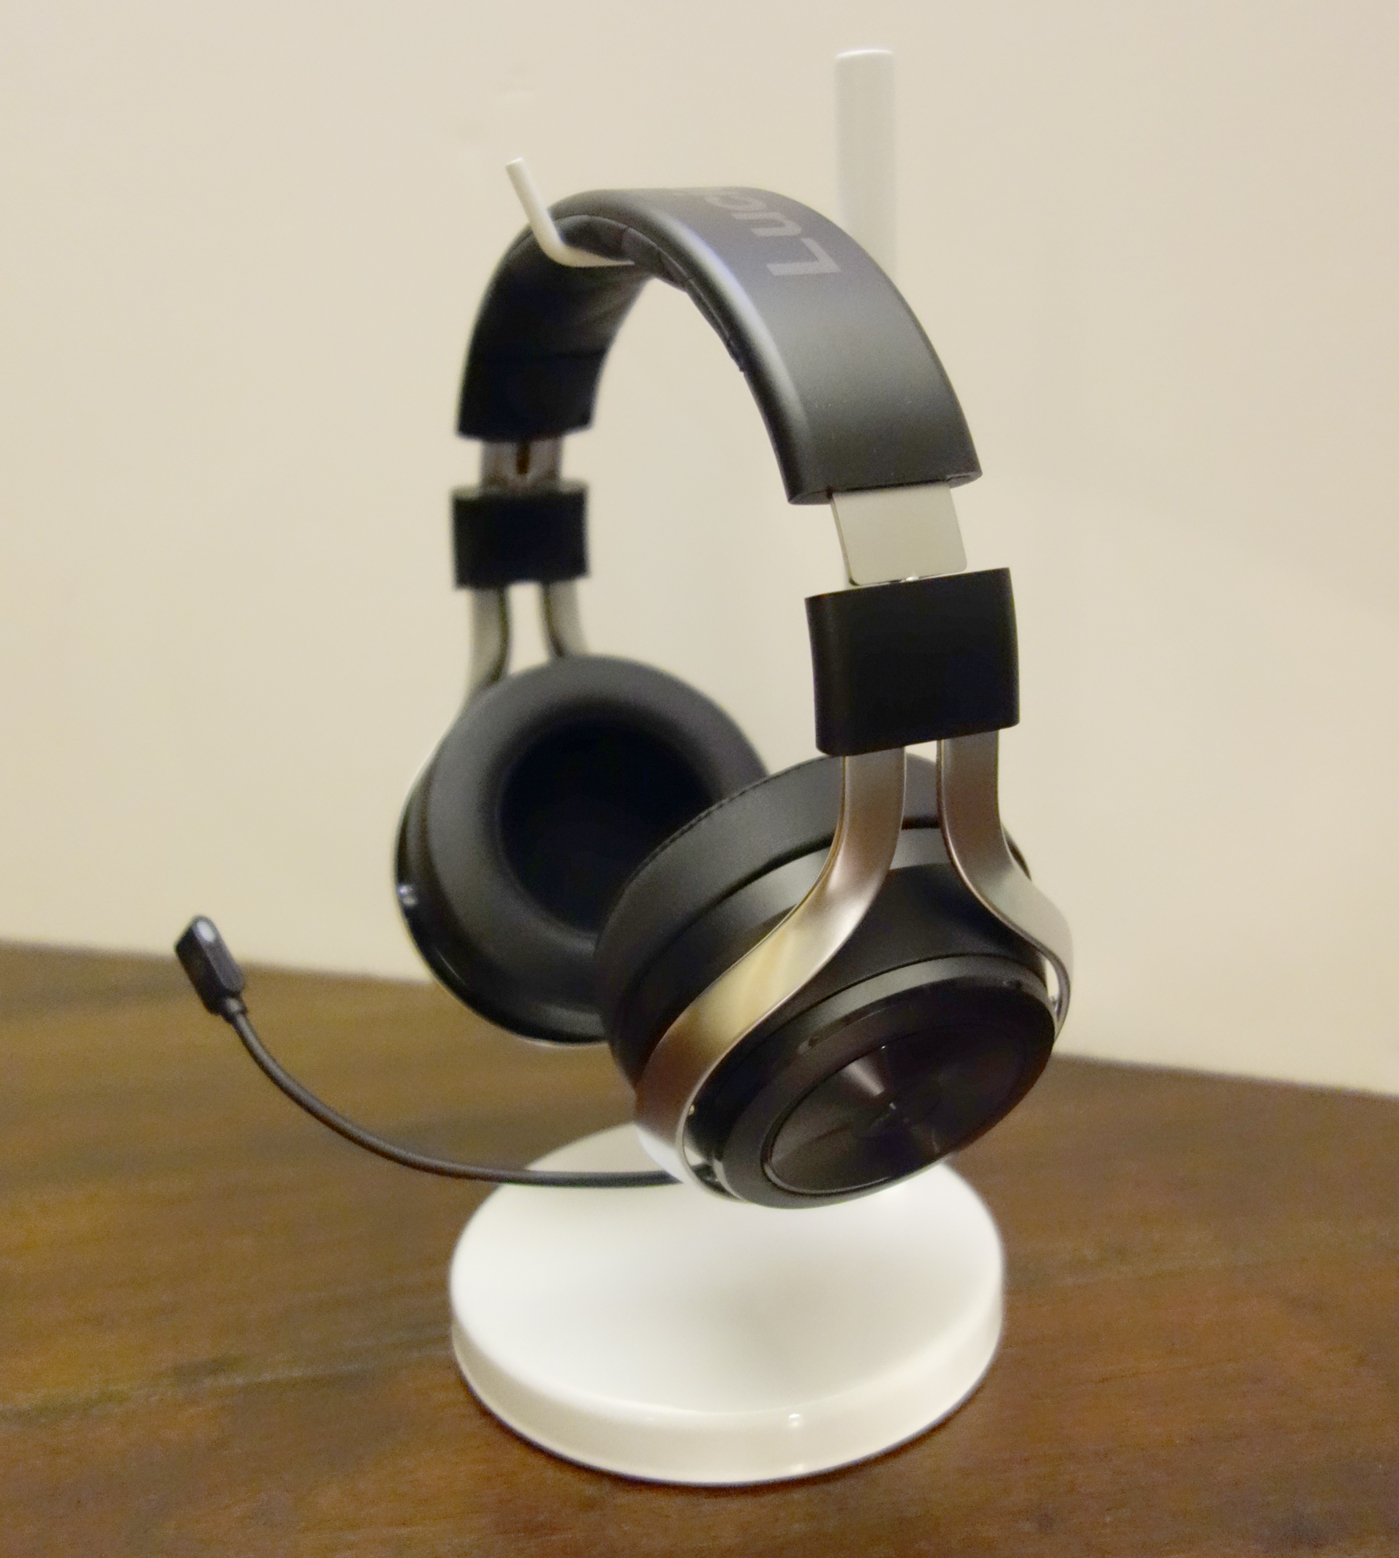 LucidSound LS30 Wireless Stereo Gaming Headset Left Side with Mic